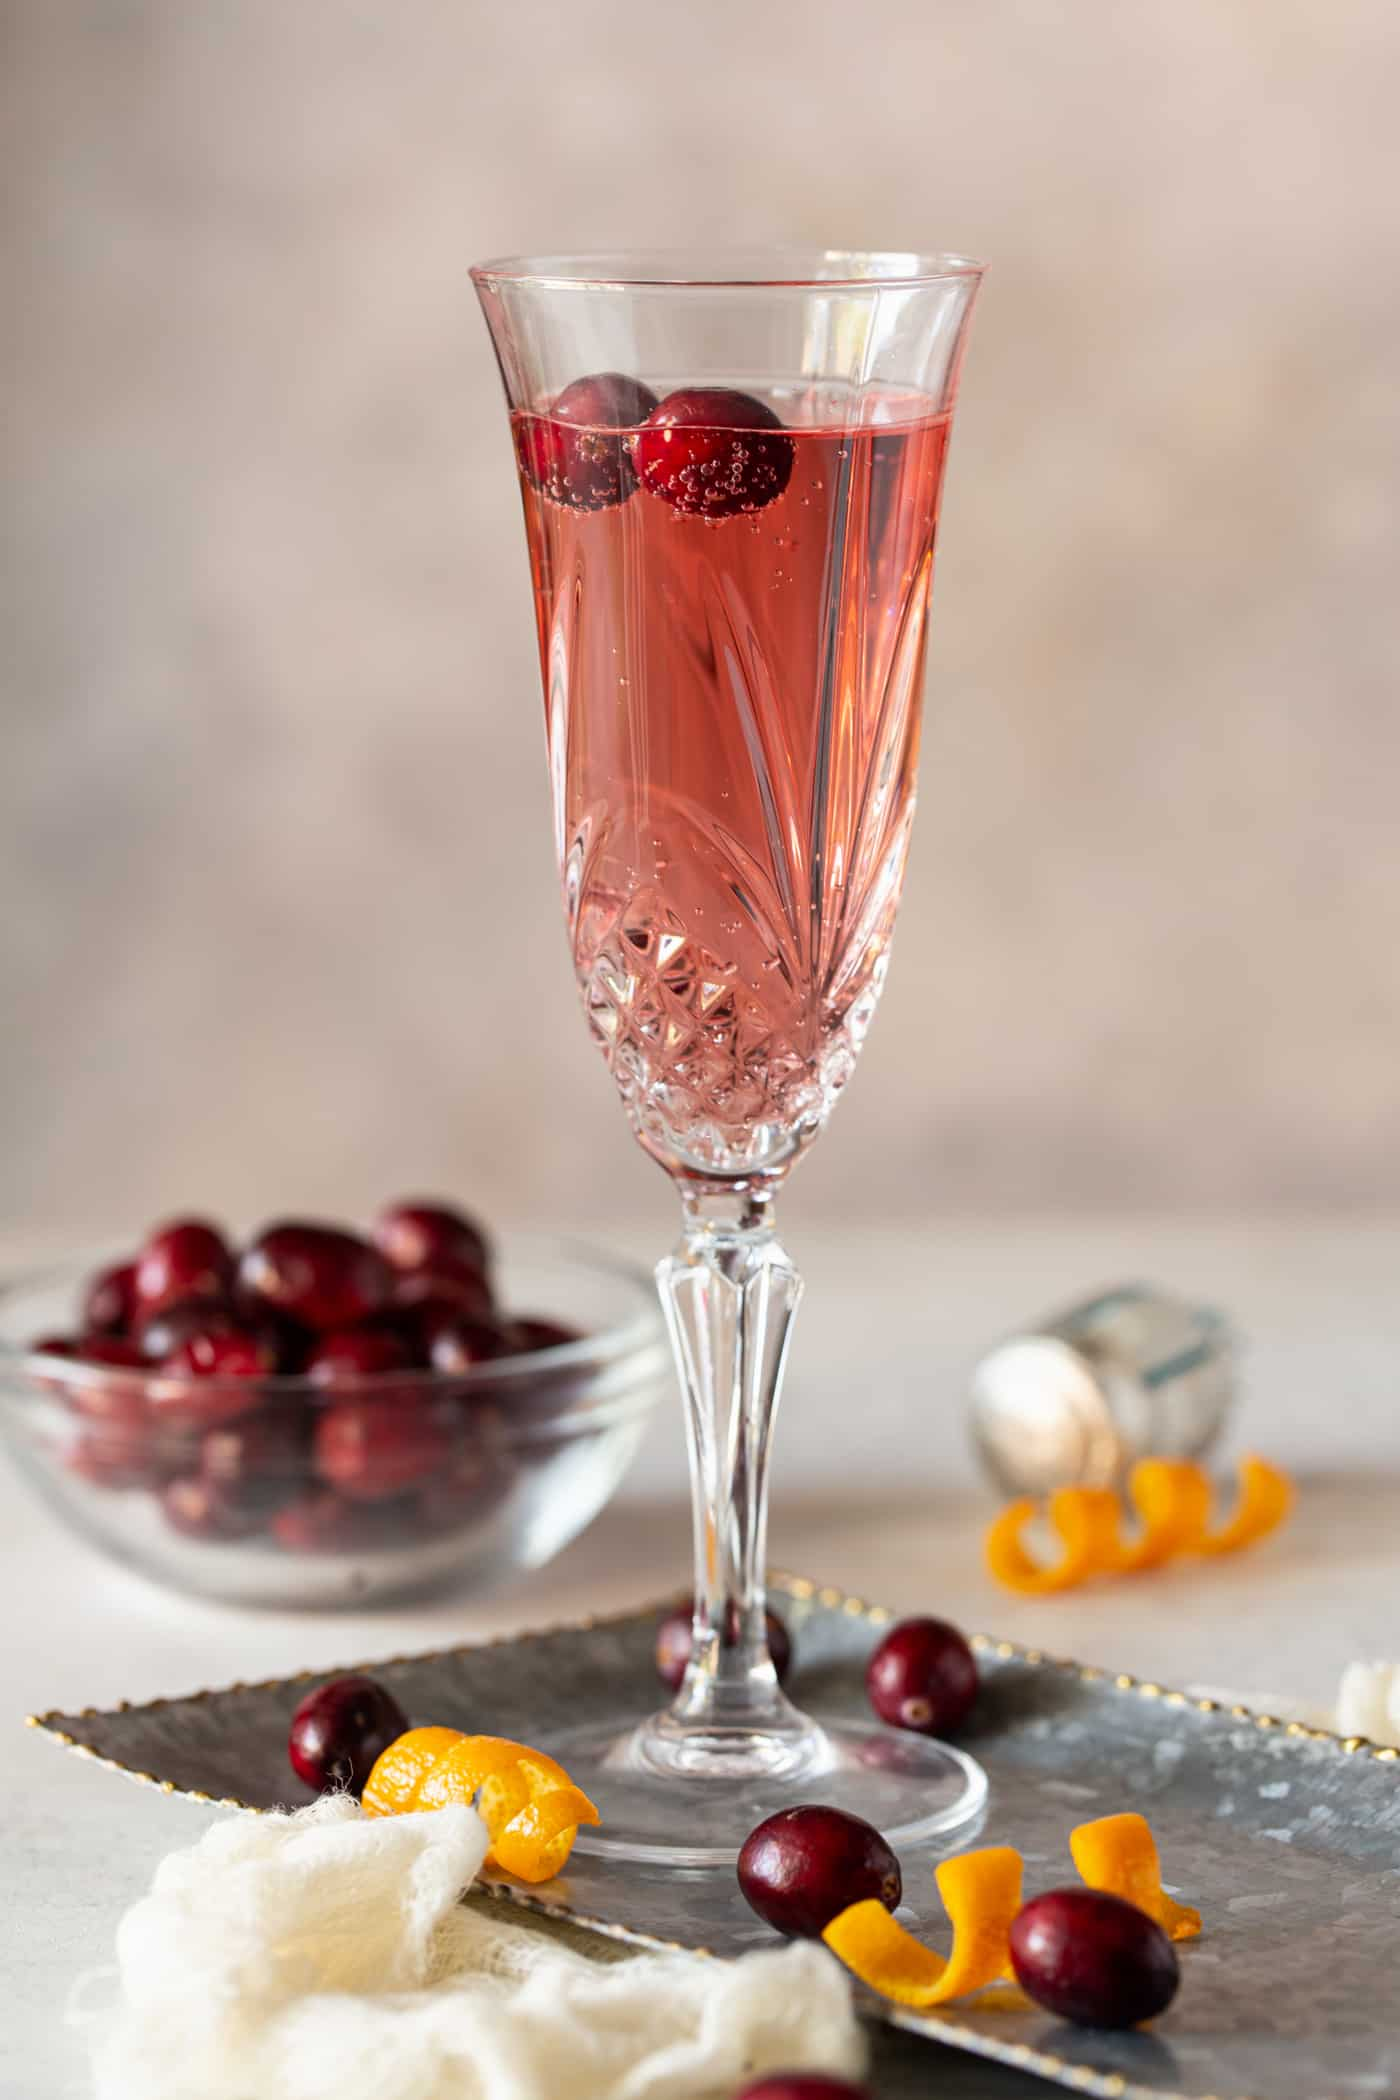 A close up of a wine glass, with Cranberry and Prosecco.